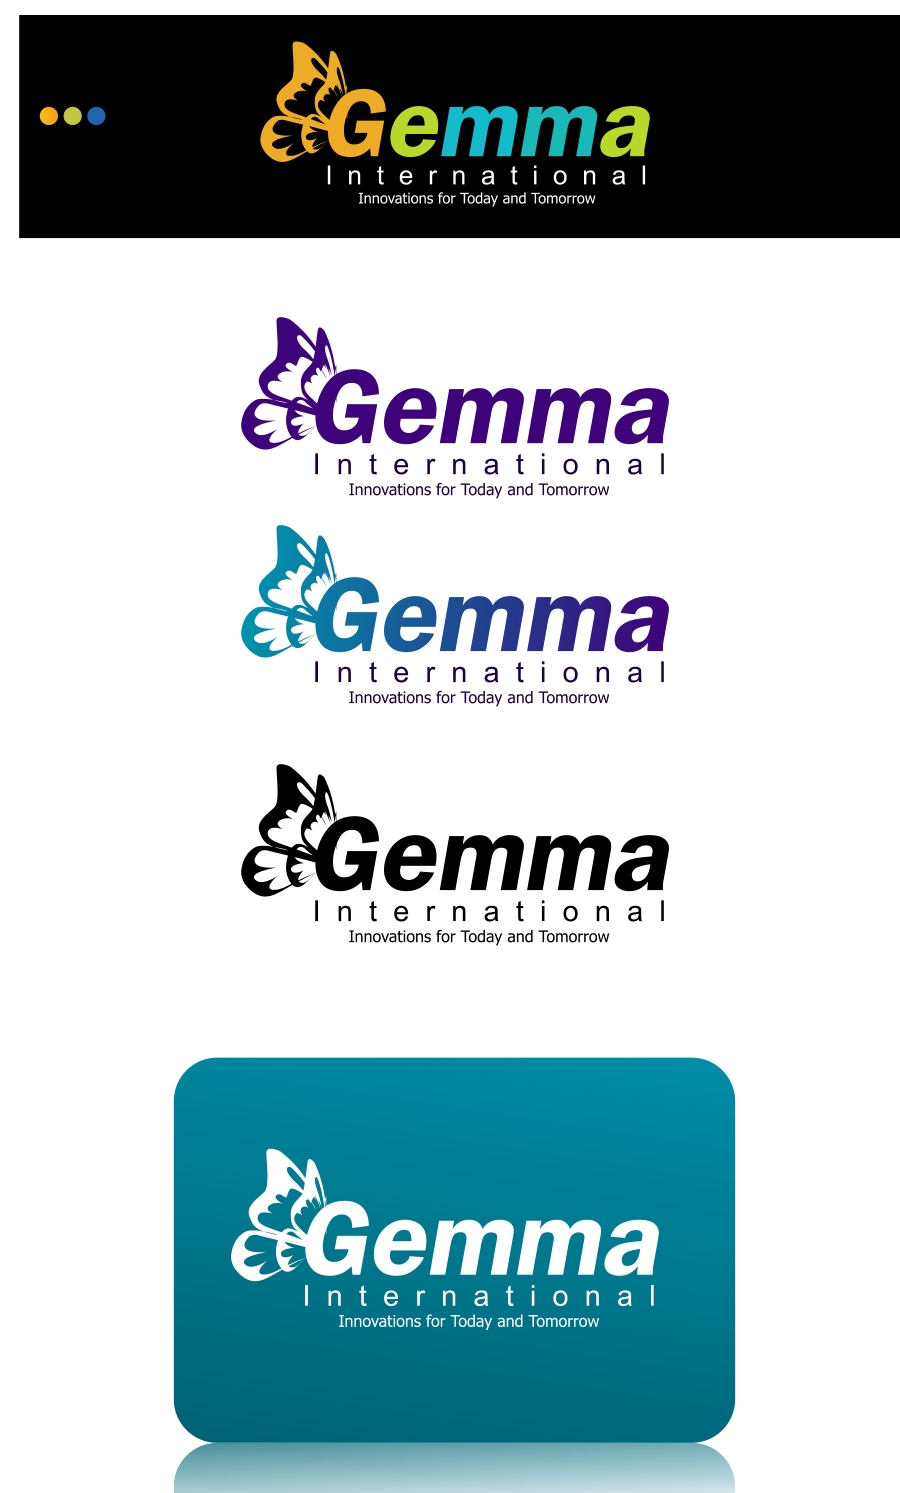 Logo Design by Private User - Entry No. 230 in the Logo Design Contest Artistic Logo Design for Gemma International.